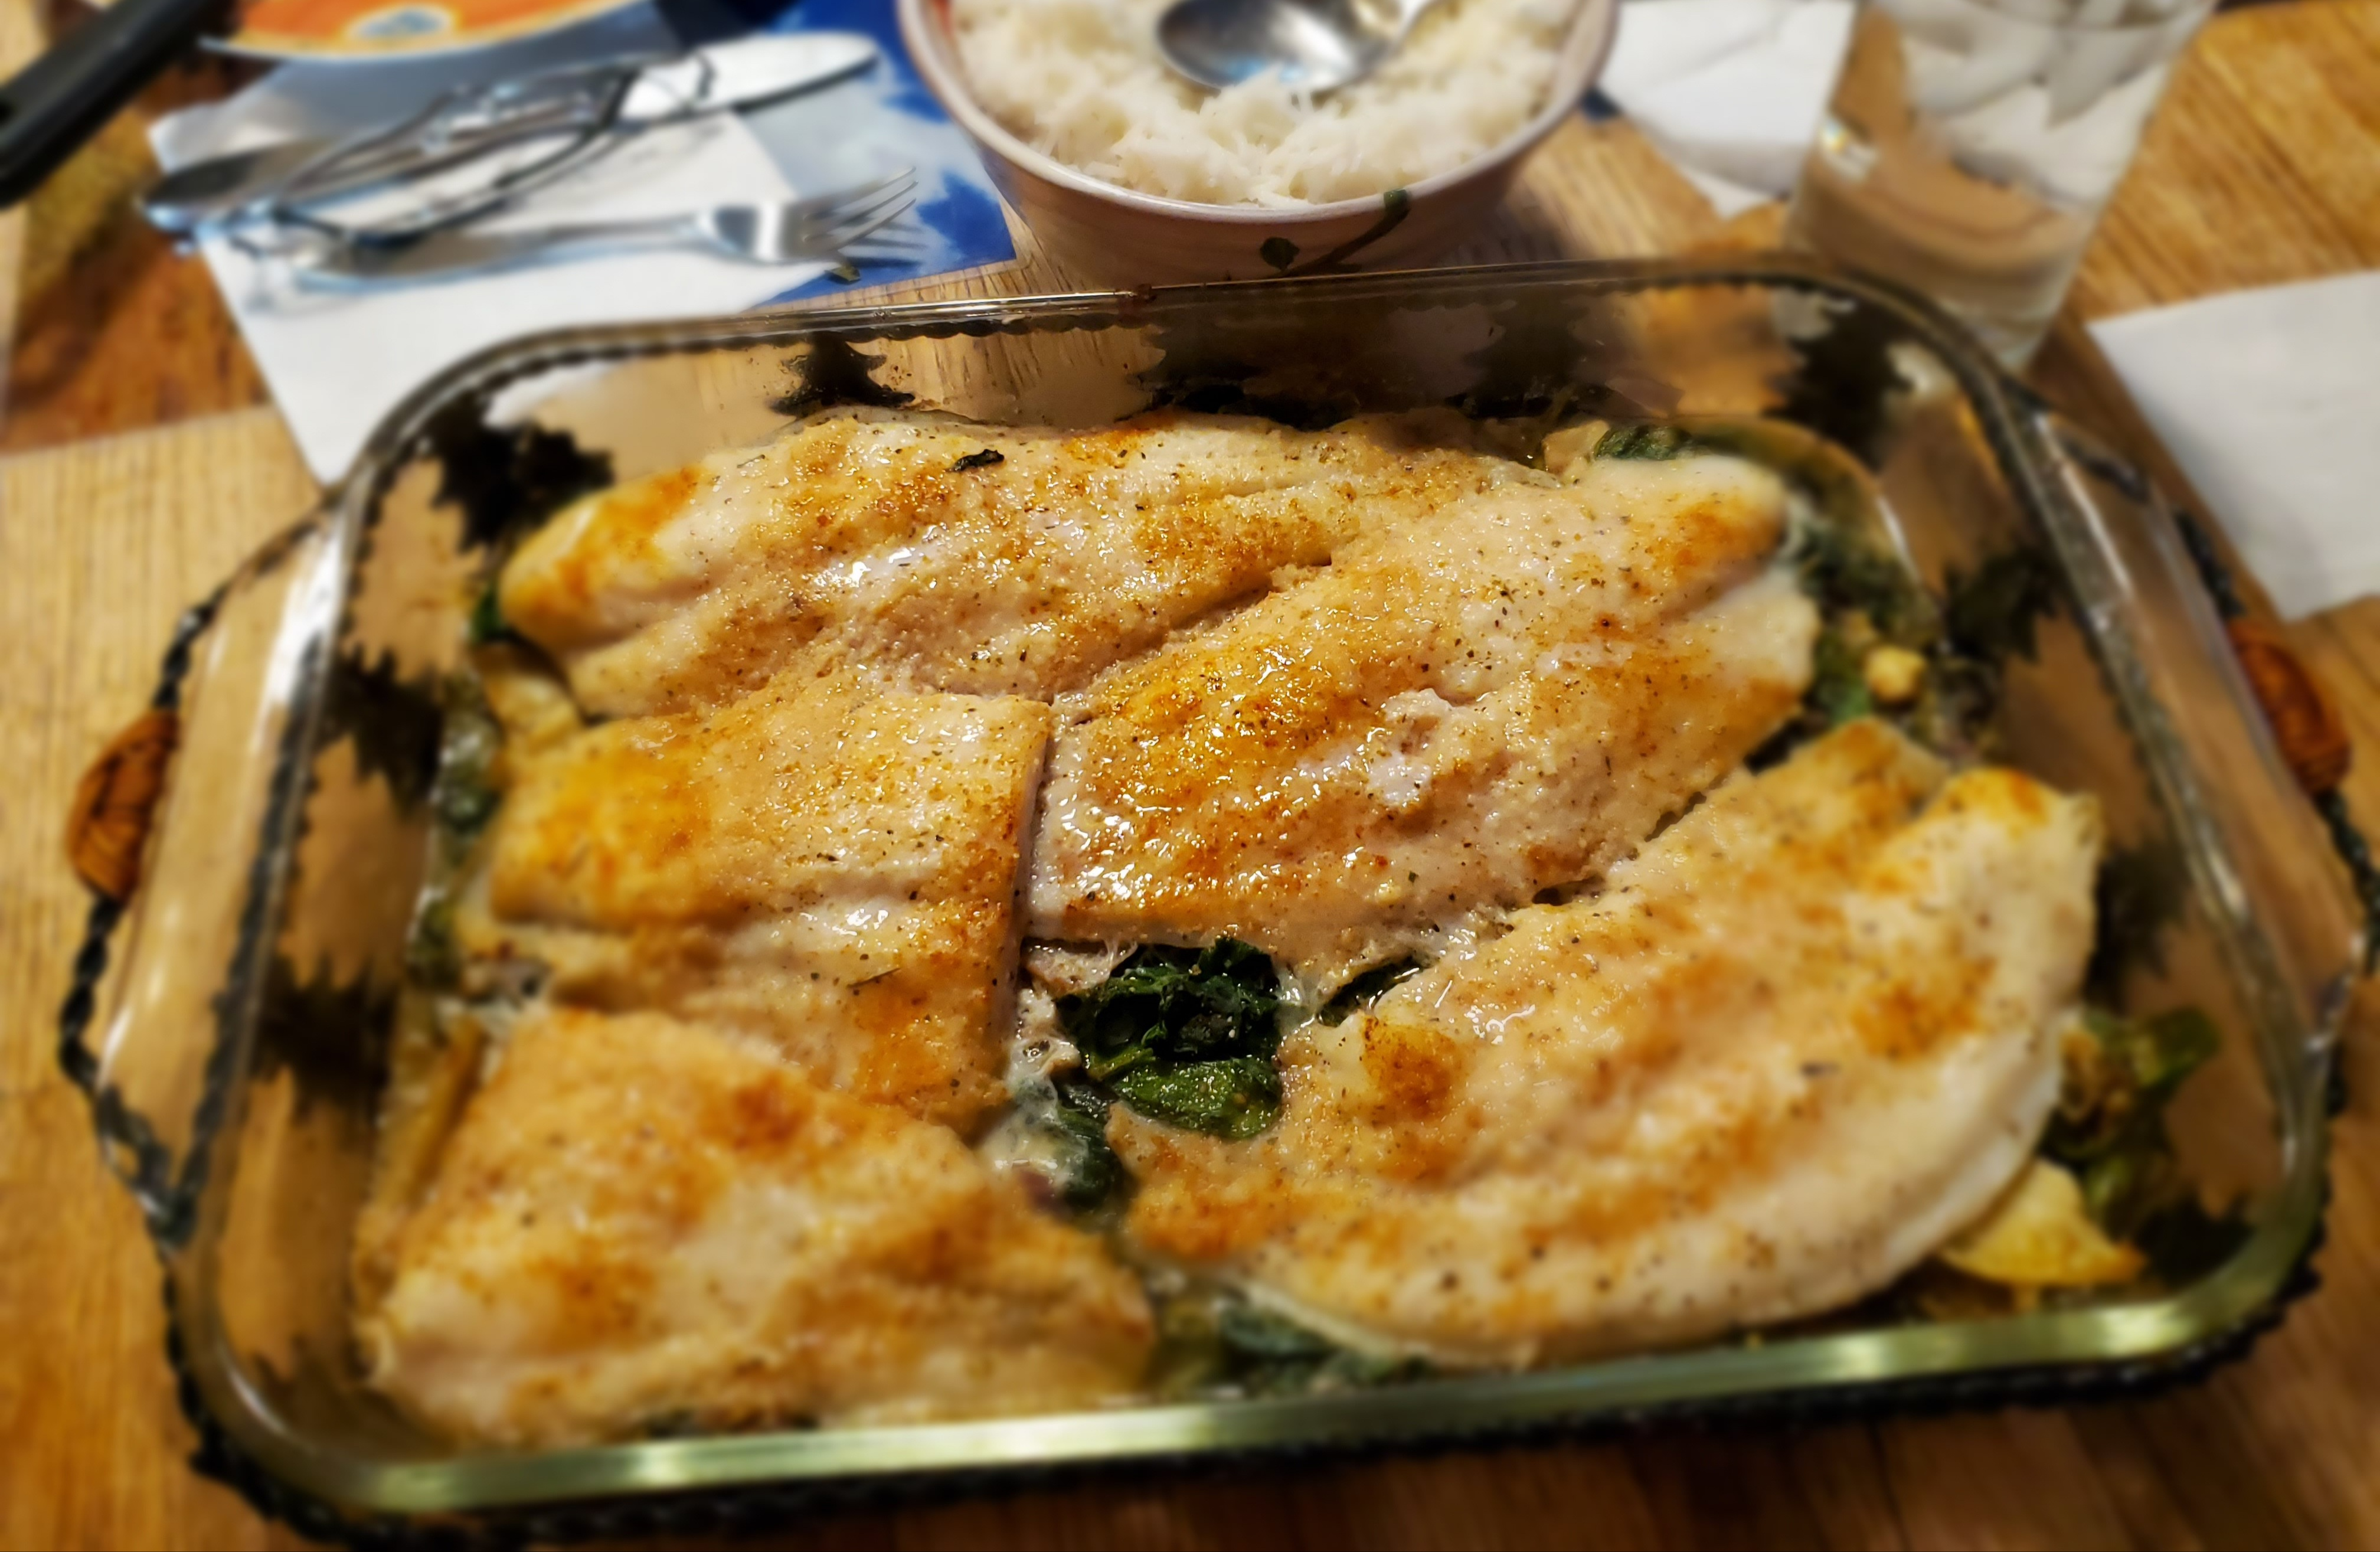 """Plenty of Mediterranean flavors in this tilapia dinner: olive oil, lemon, garlic, and feta cheese. It's served Florentine-style with fresh spinach. """"A very clean, fresh, and satisfying Mediterranean dish,"""" says Eddie Riddell."""